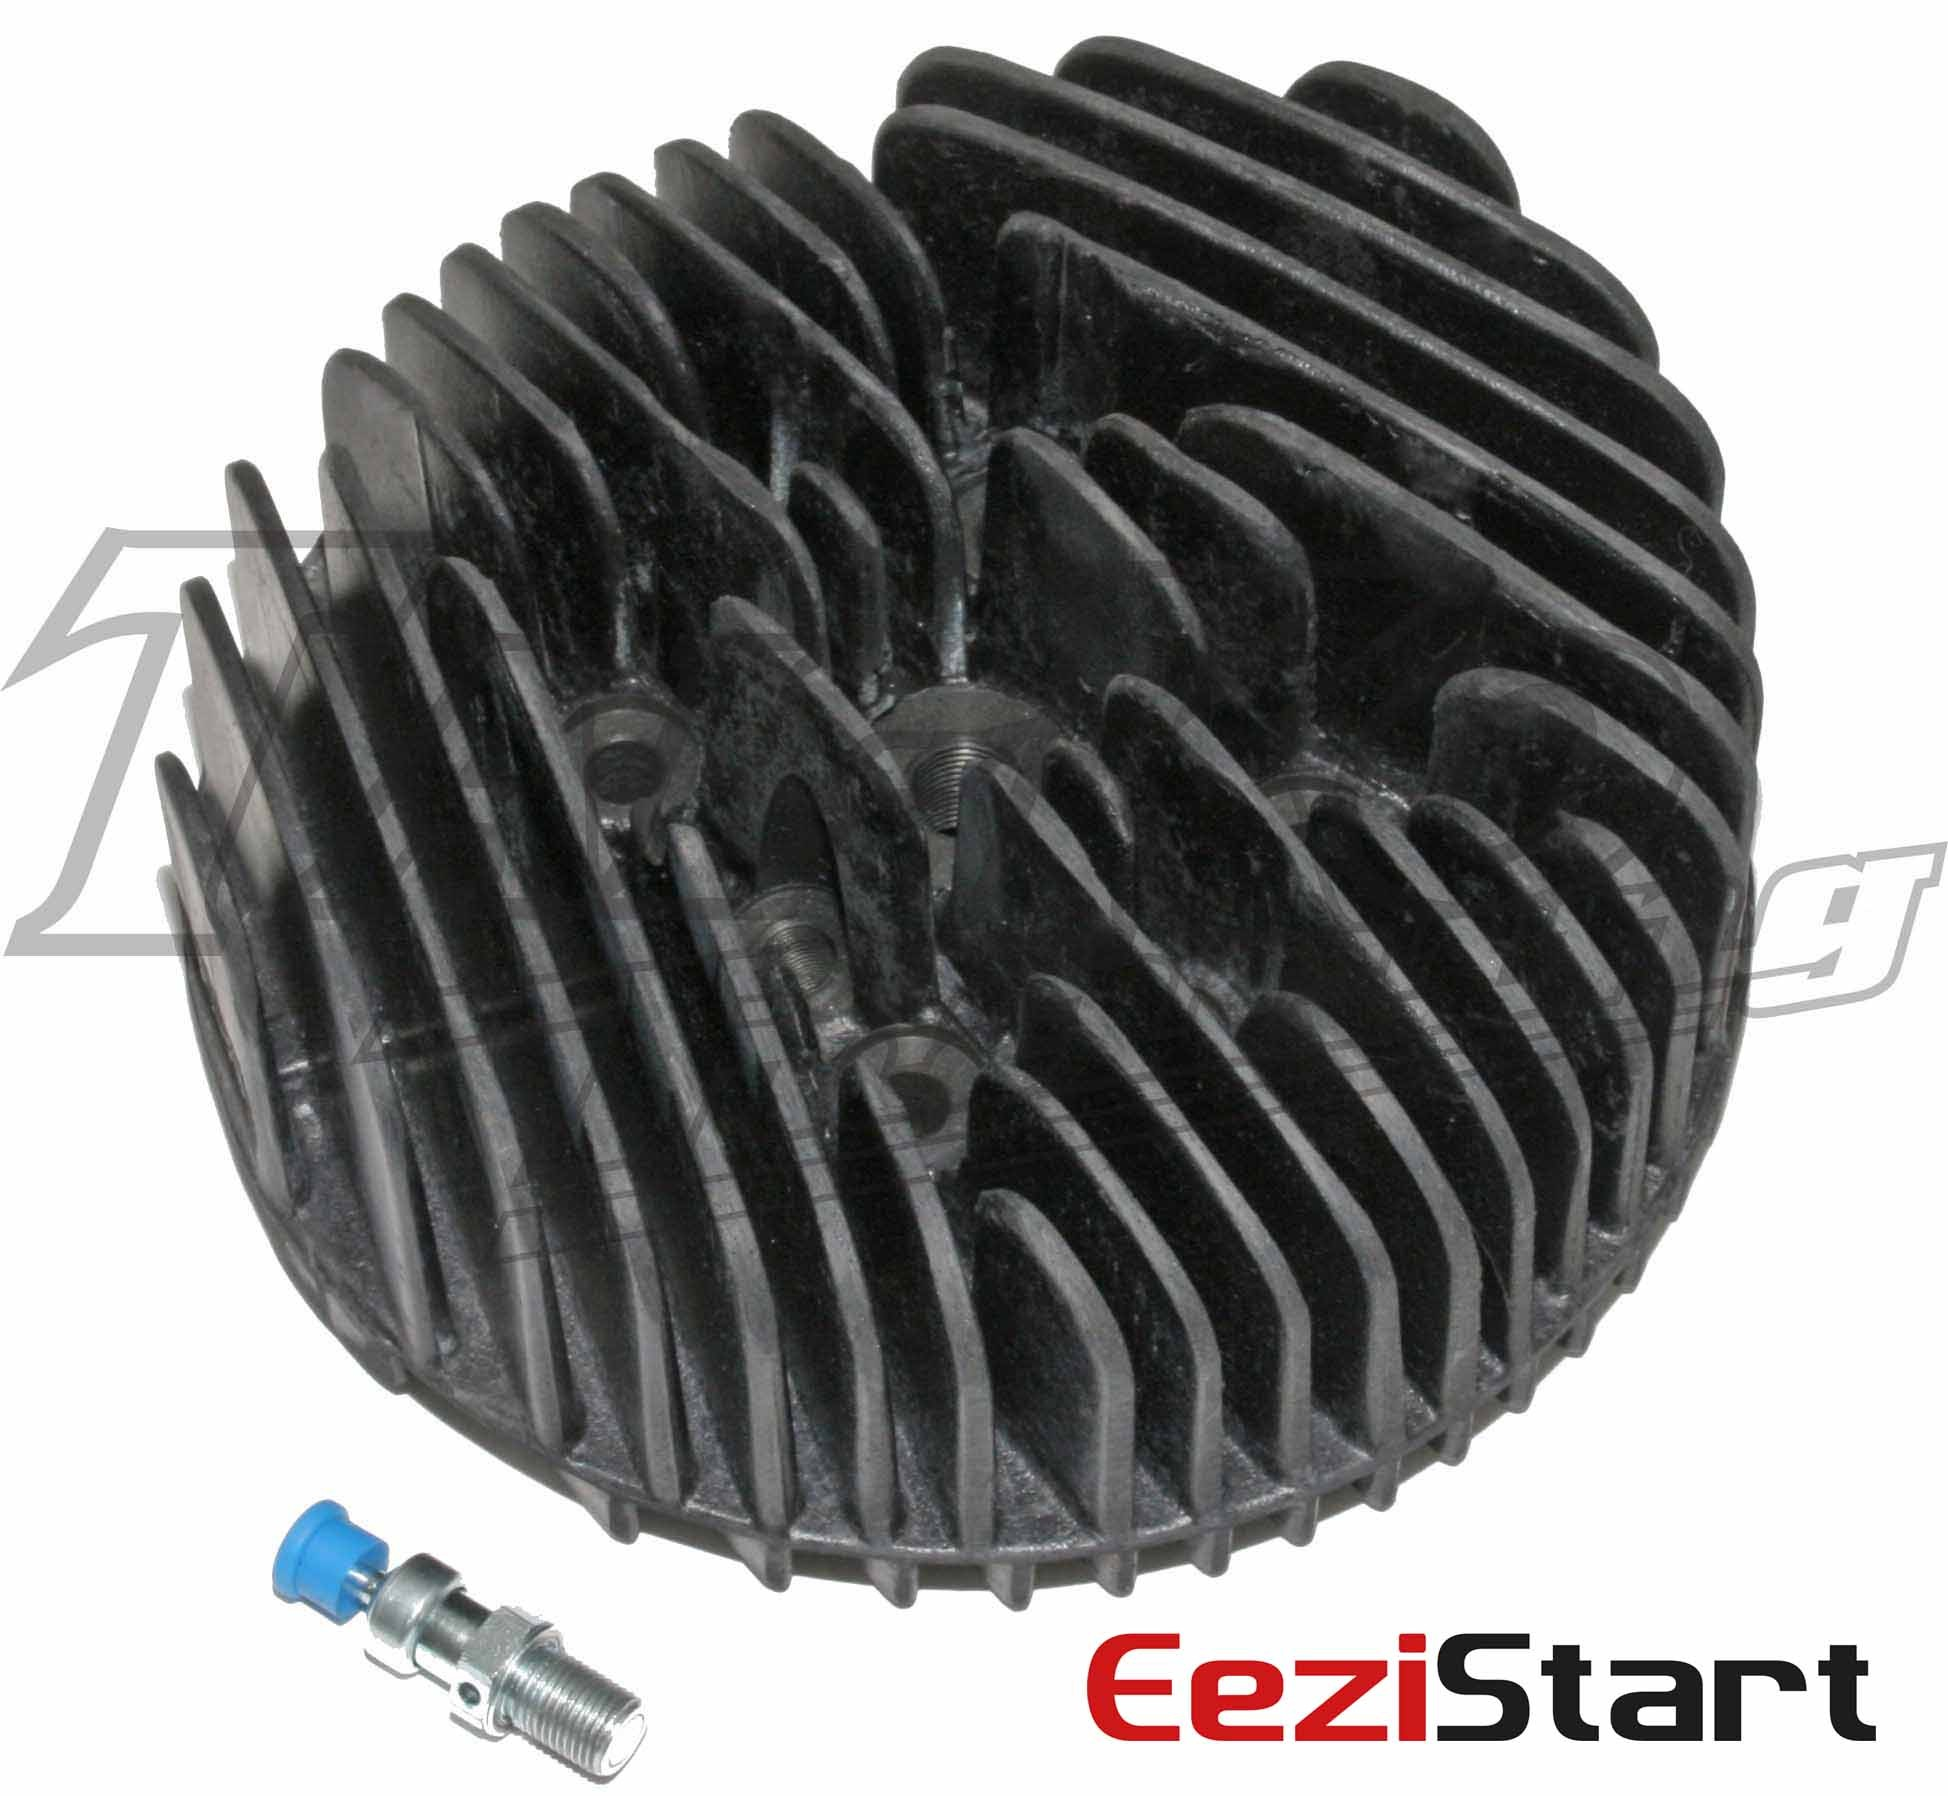 TKM BT82 EeziStart HEAD JUNIOR